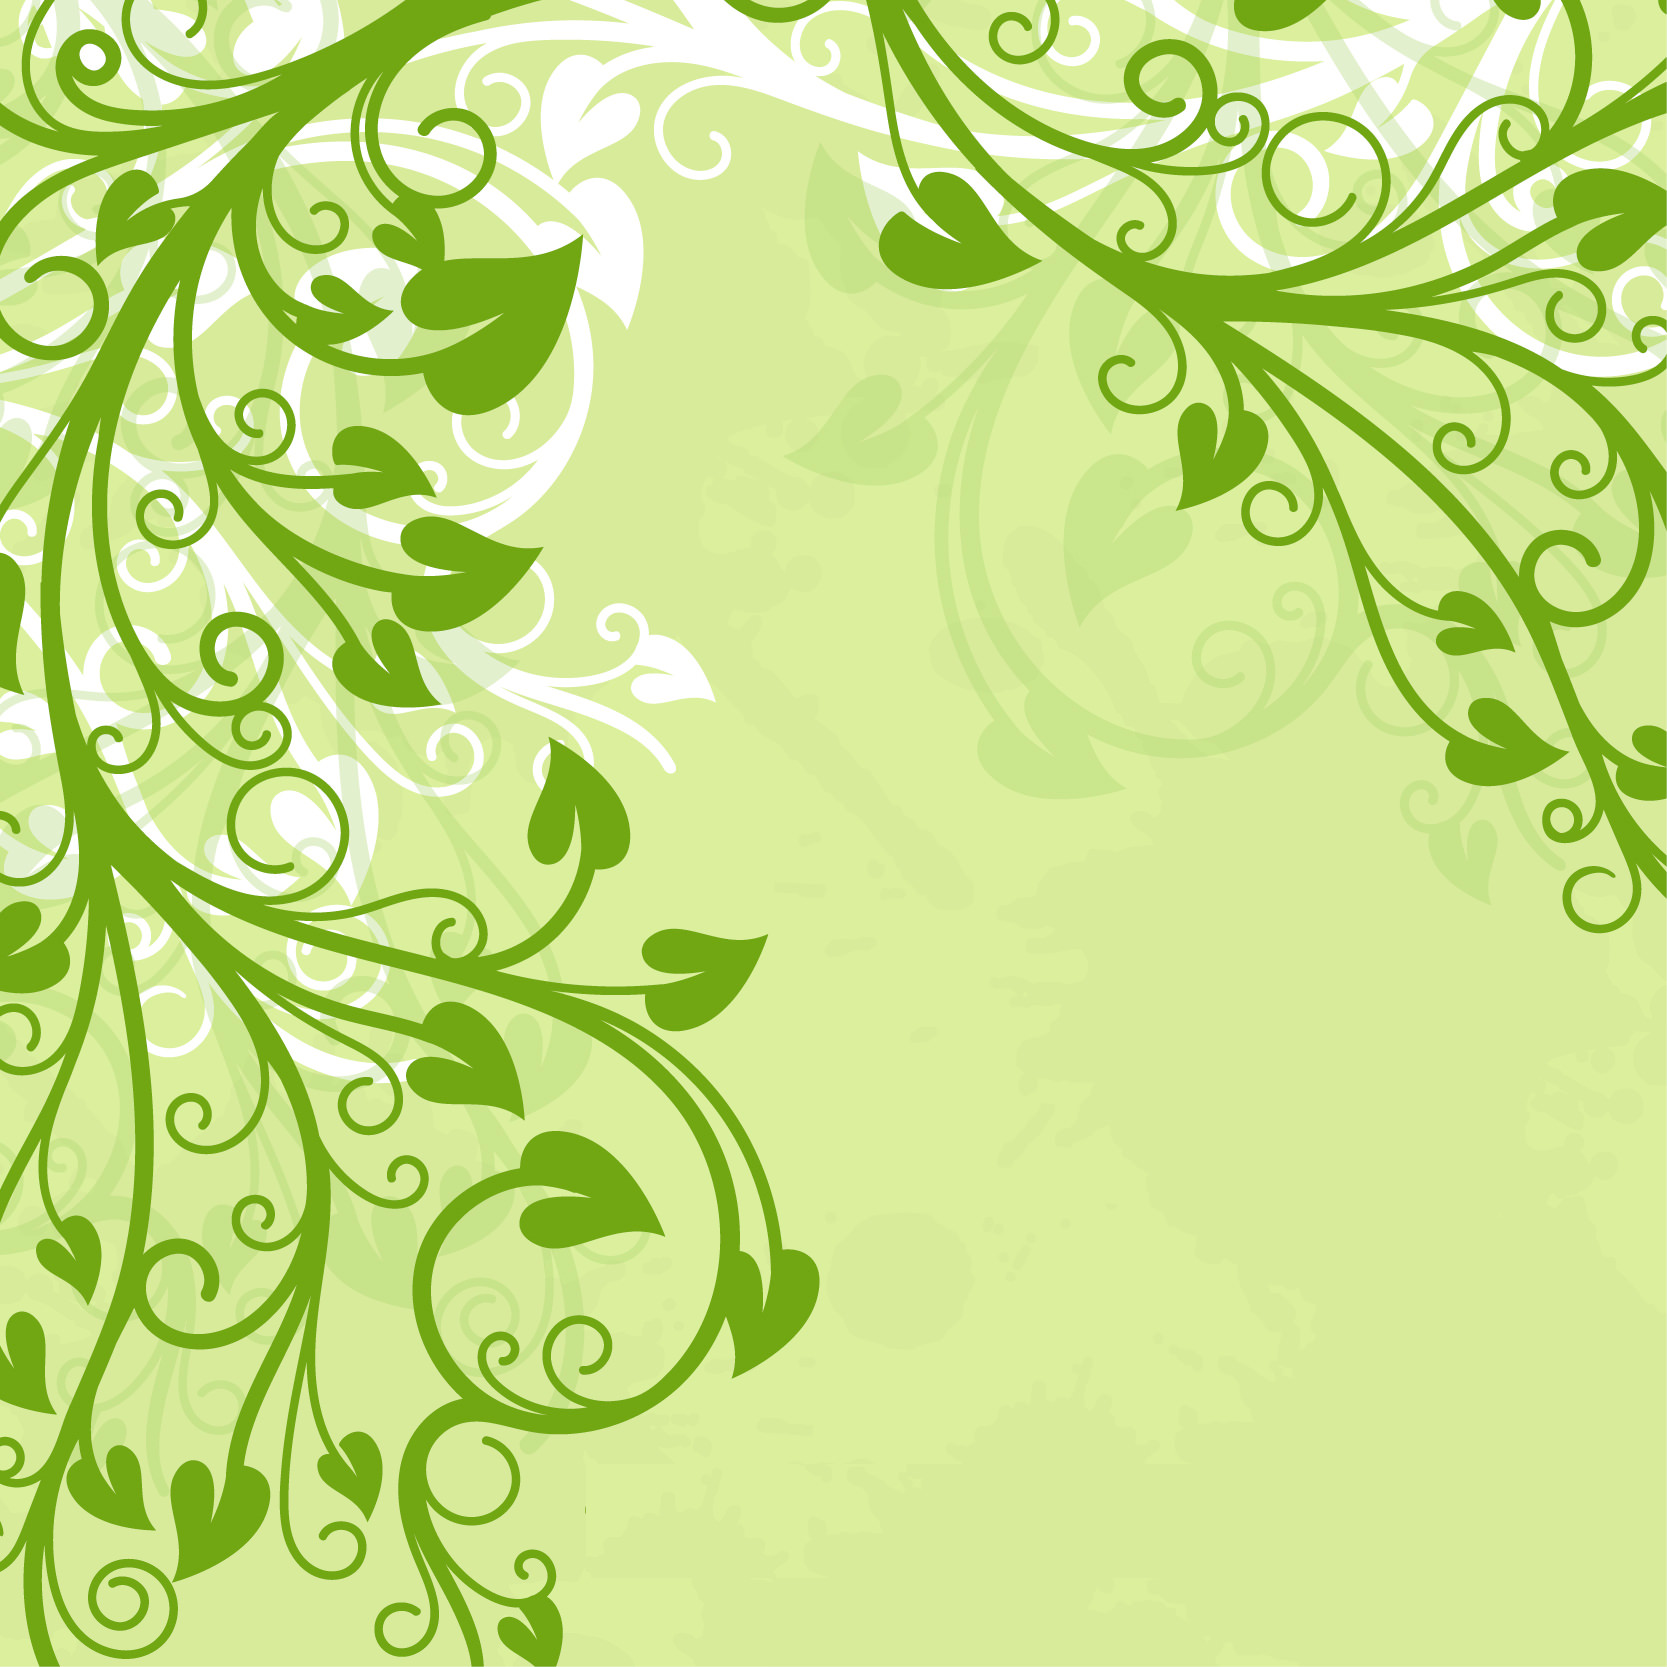 Green Leaves Free Vector Background